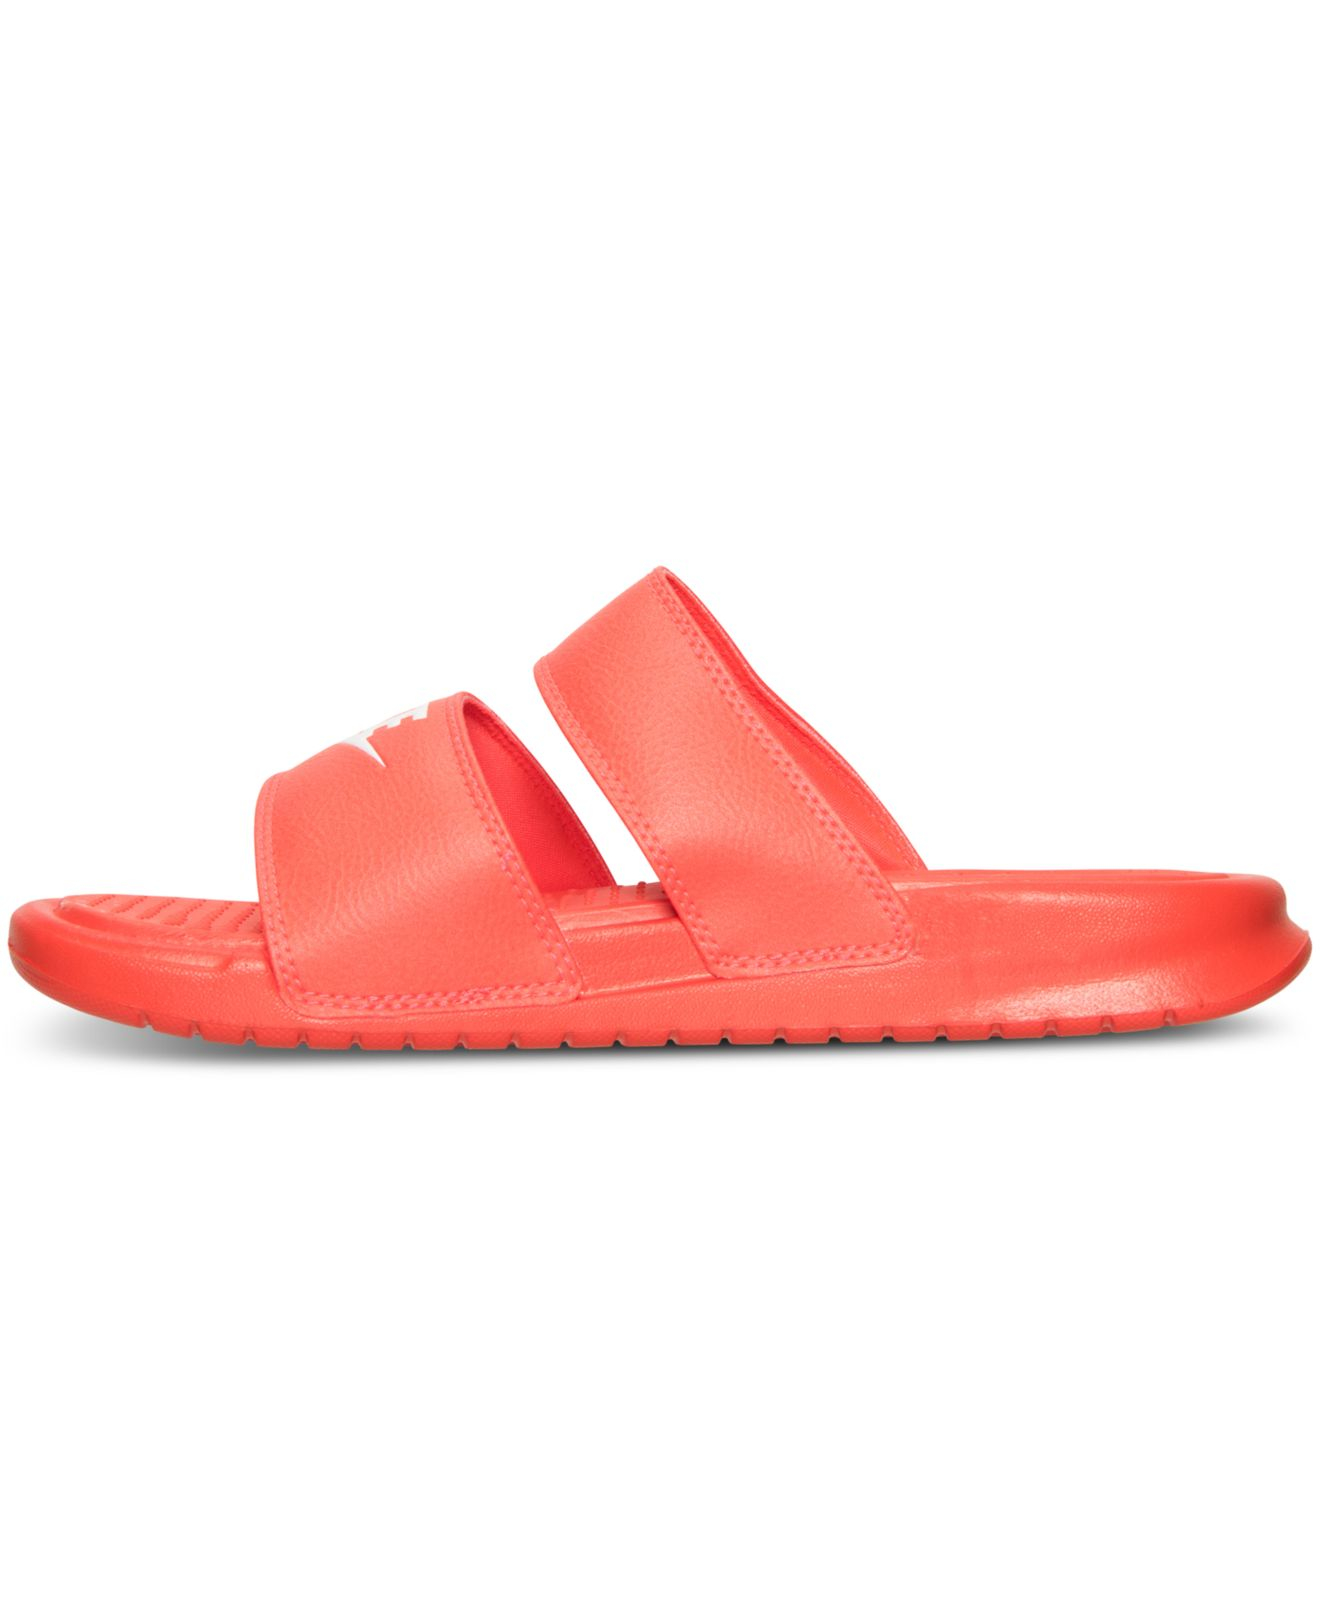 ec131503e93c official store nike benassi duo ultra slide womens slide sandals bbe20  03fda  netherlands gallery. previously sold at macys womens nike benassi  4c7a4 fb3d2